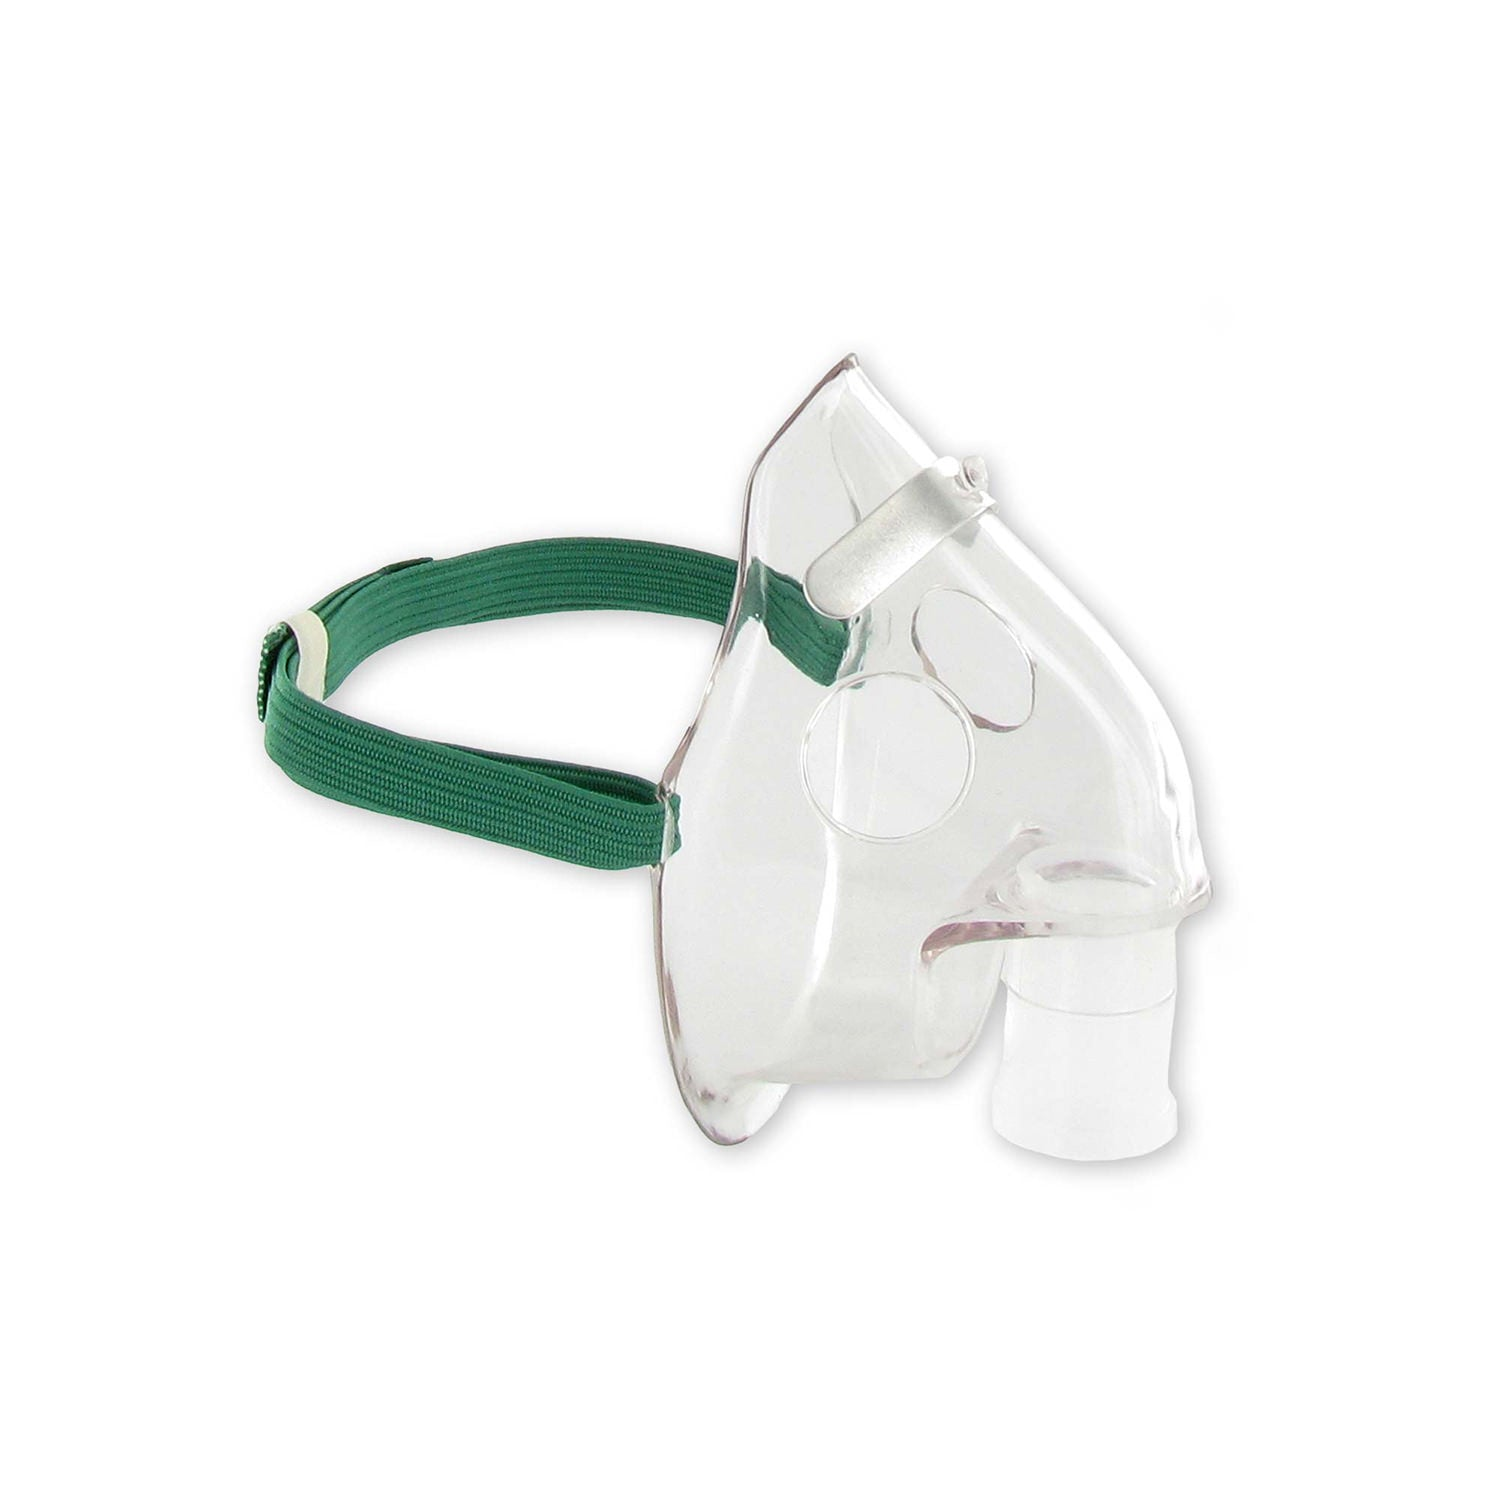 Pediatric Mask for ALL Omron Nebulizers